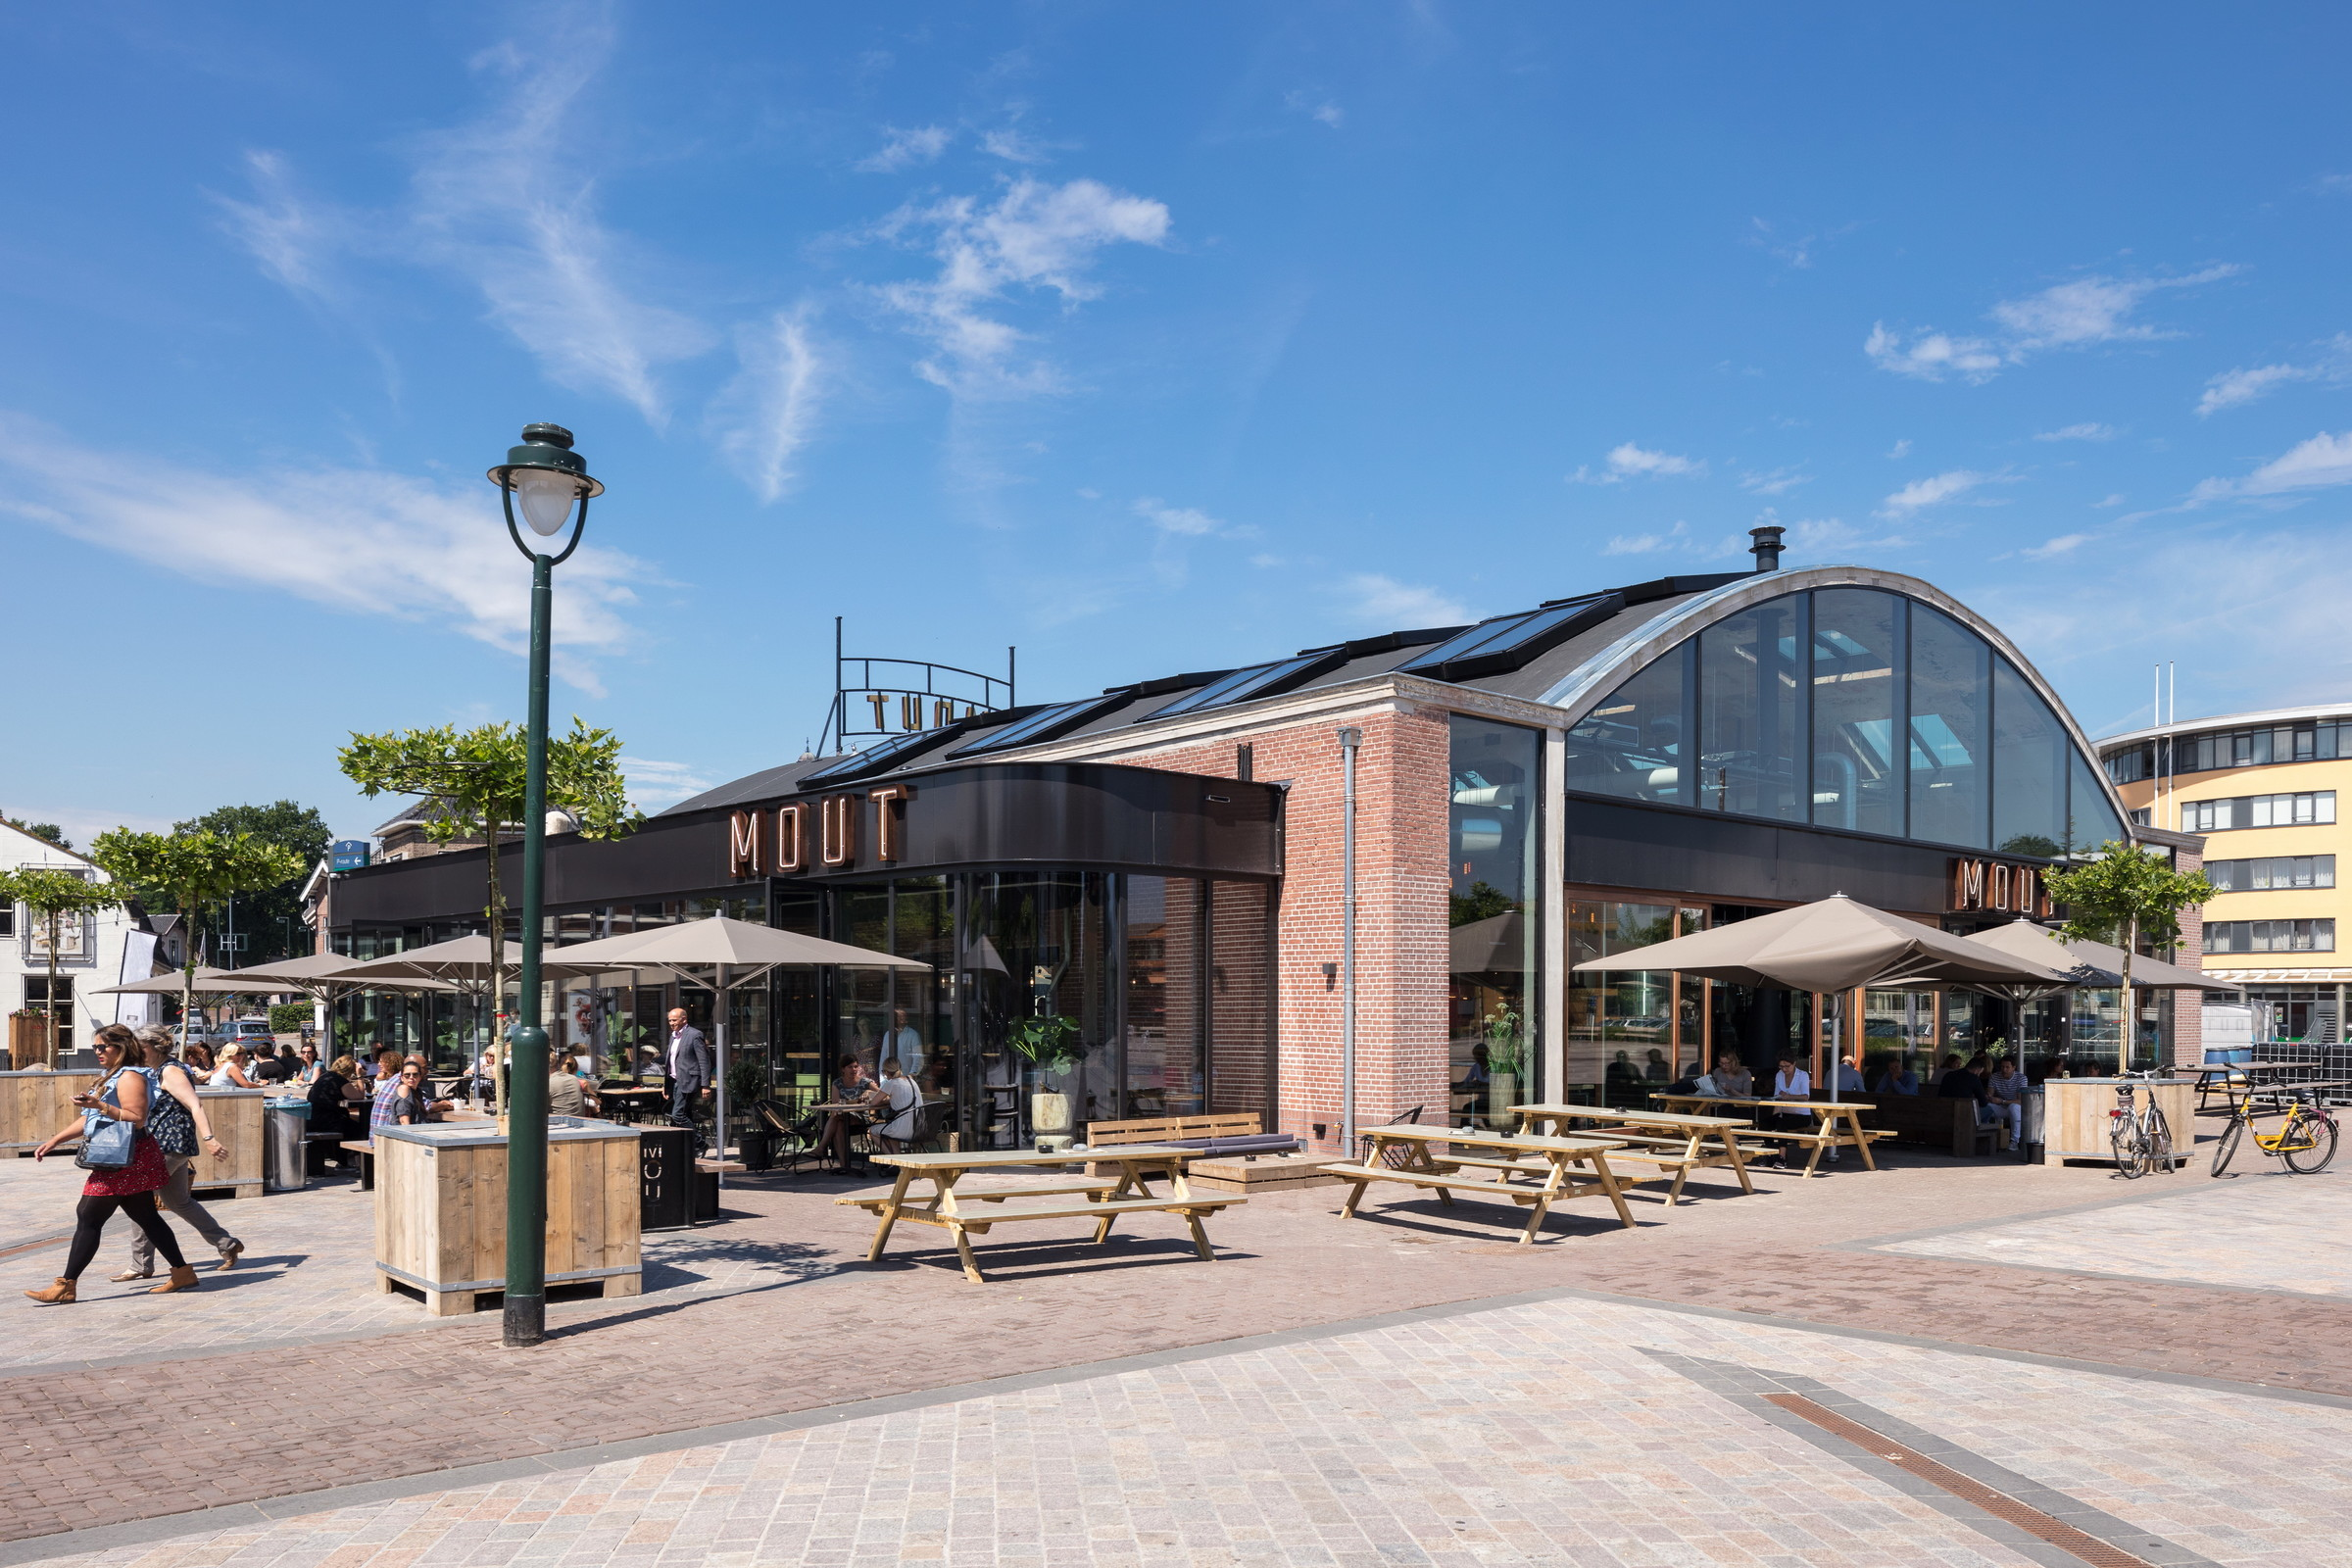 Food Hall Mout With Beer Brewery Zecc Architecten